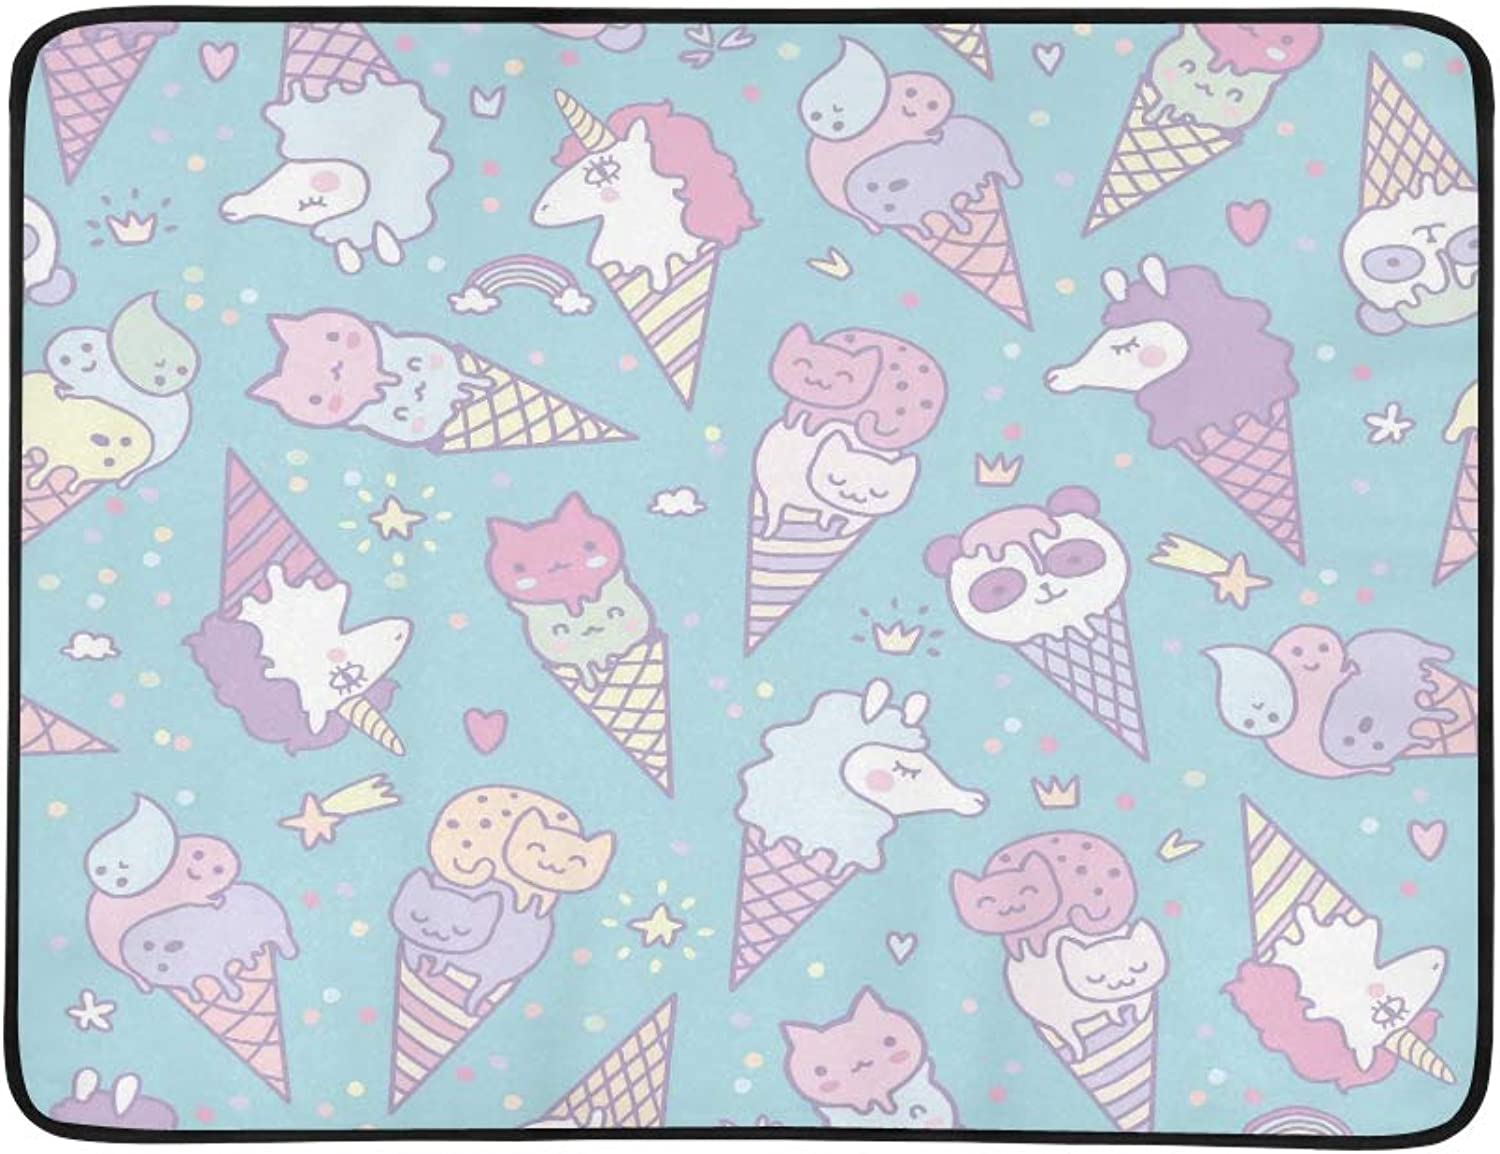 Vector Illustration of Pop Cute Ice Cream Cones Th Pattern Portable and Foldable Blanket Mat 60x78 Inch Handy Mat for Camping Picnic Beach Indoor Outdoor Travel